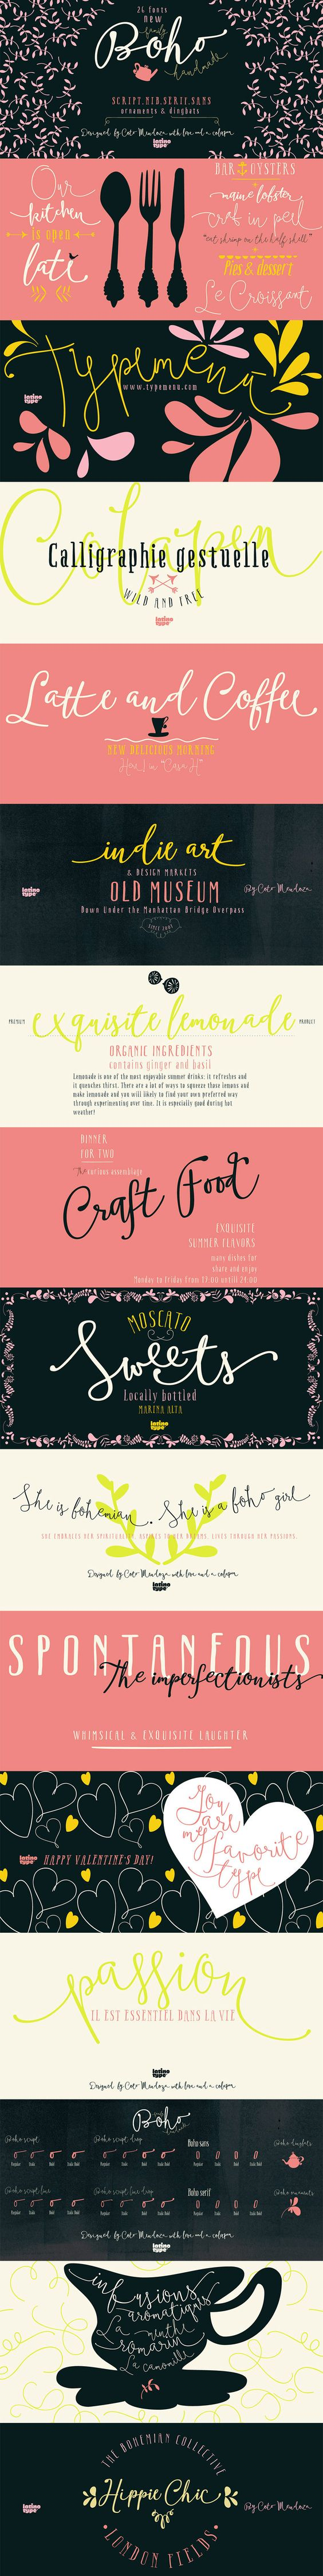 Boho Font by Latino Type   22 Professional & Artistic Fonts Apr 2015